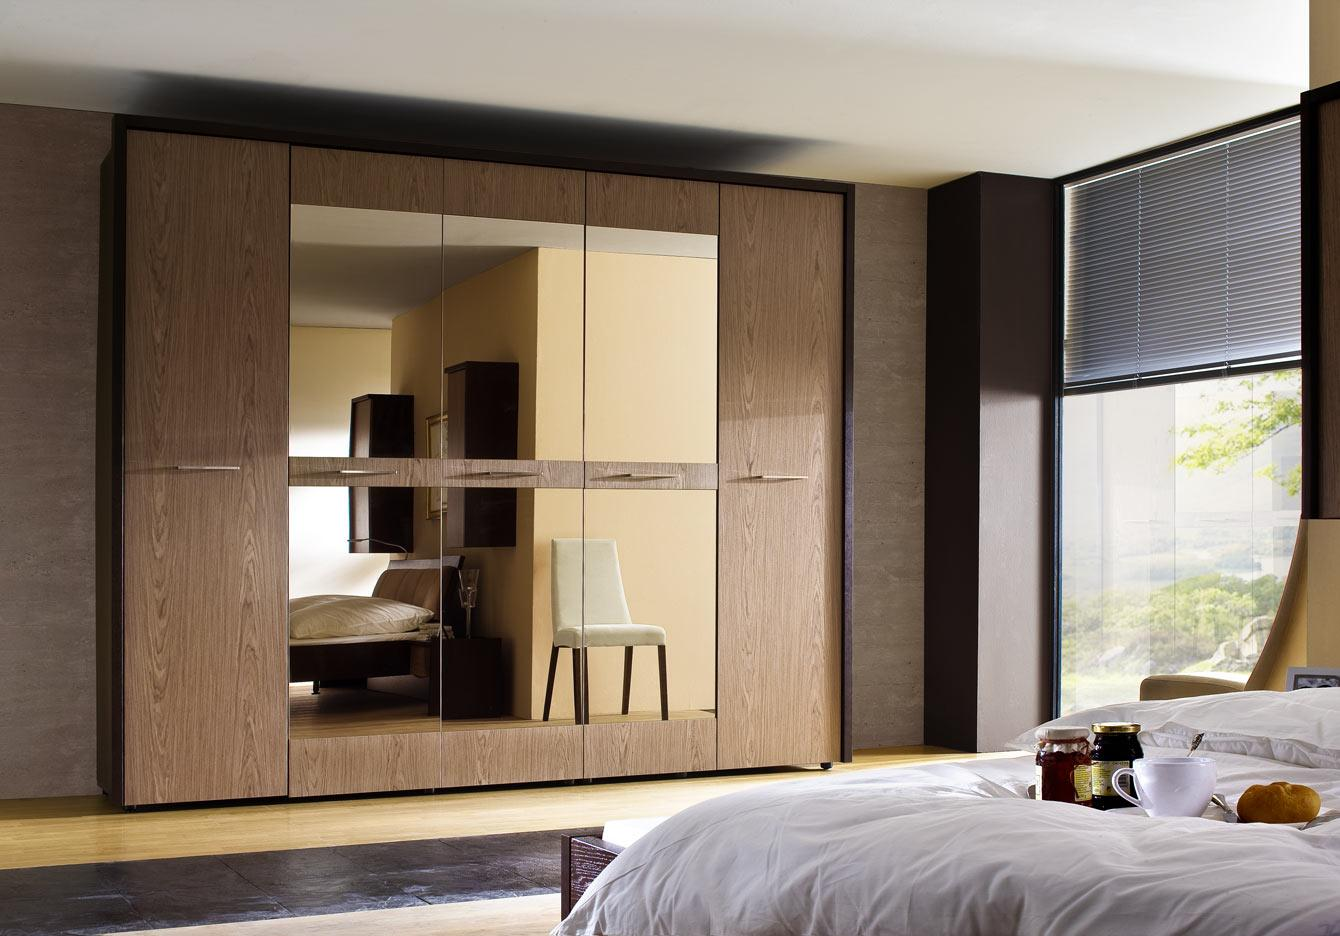 dressing in dormitor cum se construieste un dressing. Black Bedroom Furniture Sets. Home Design Ideas